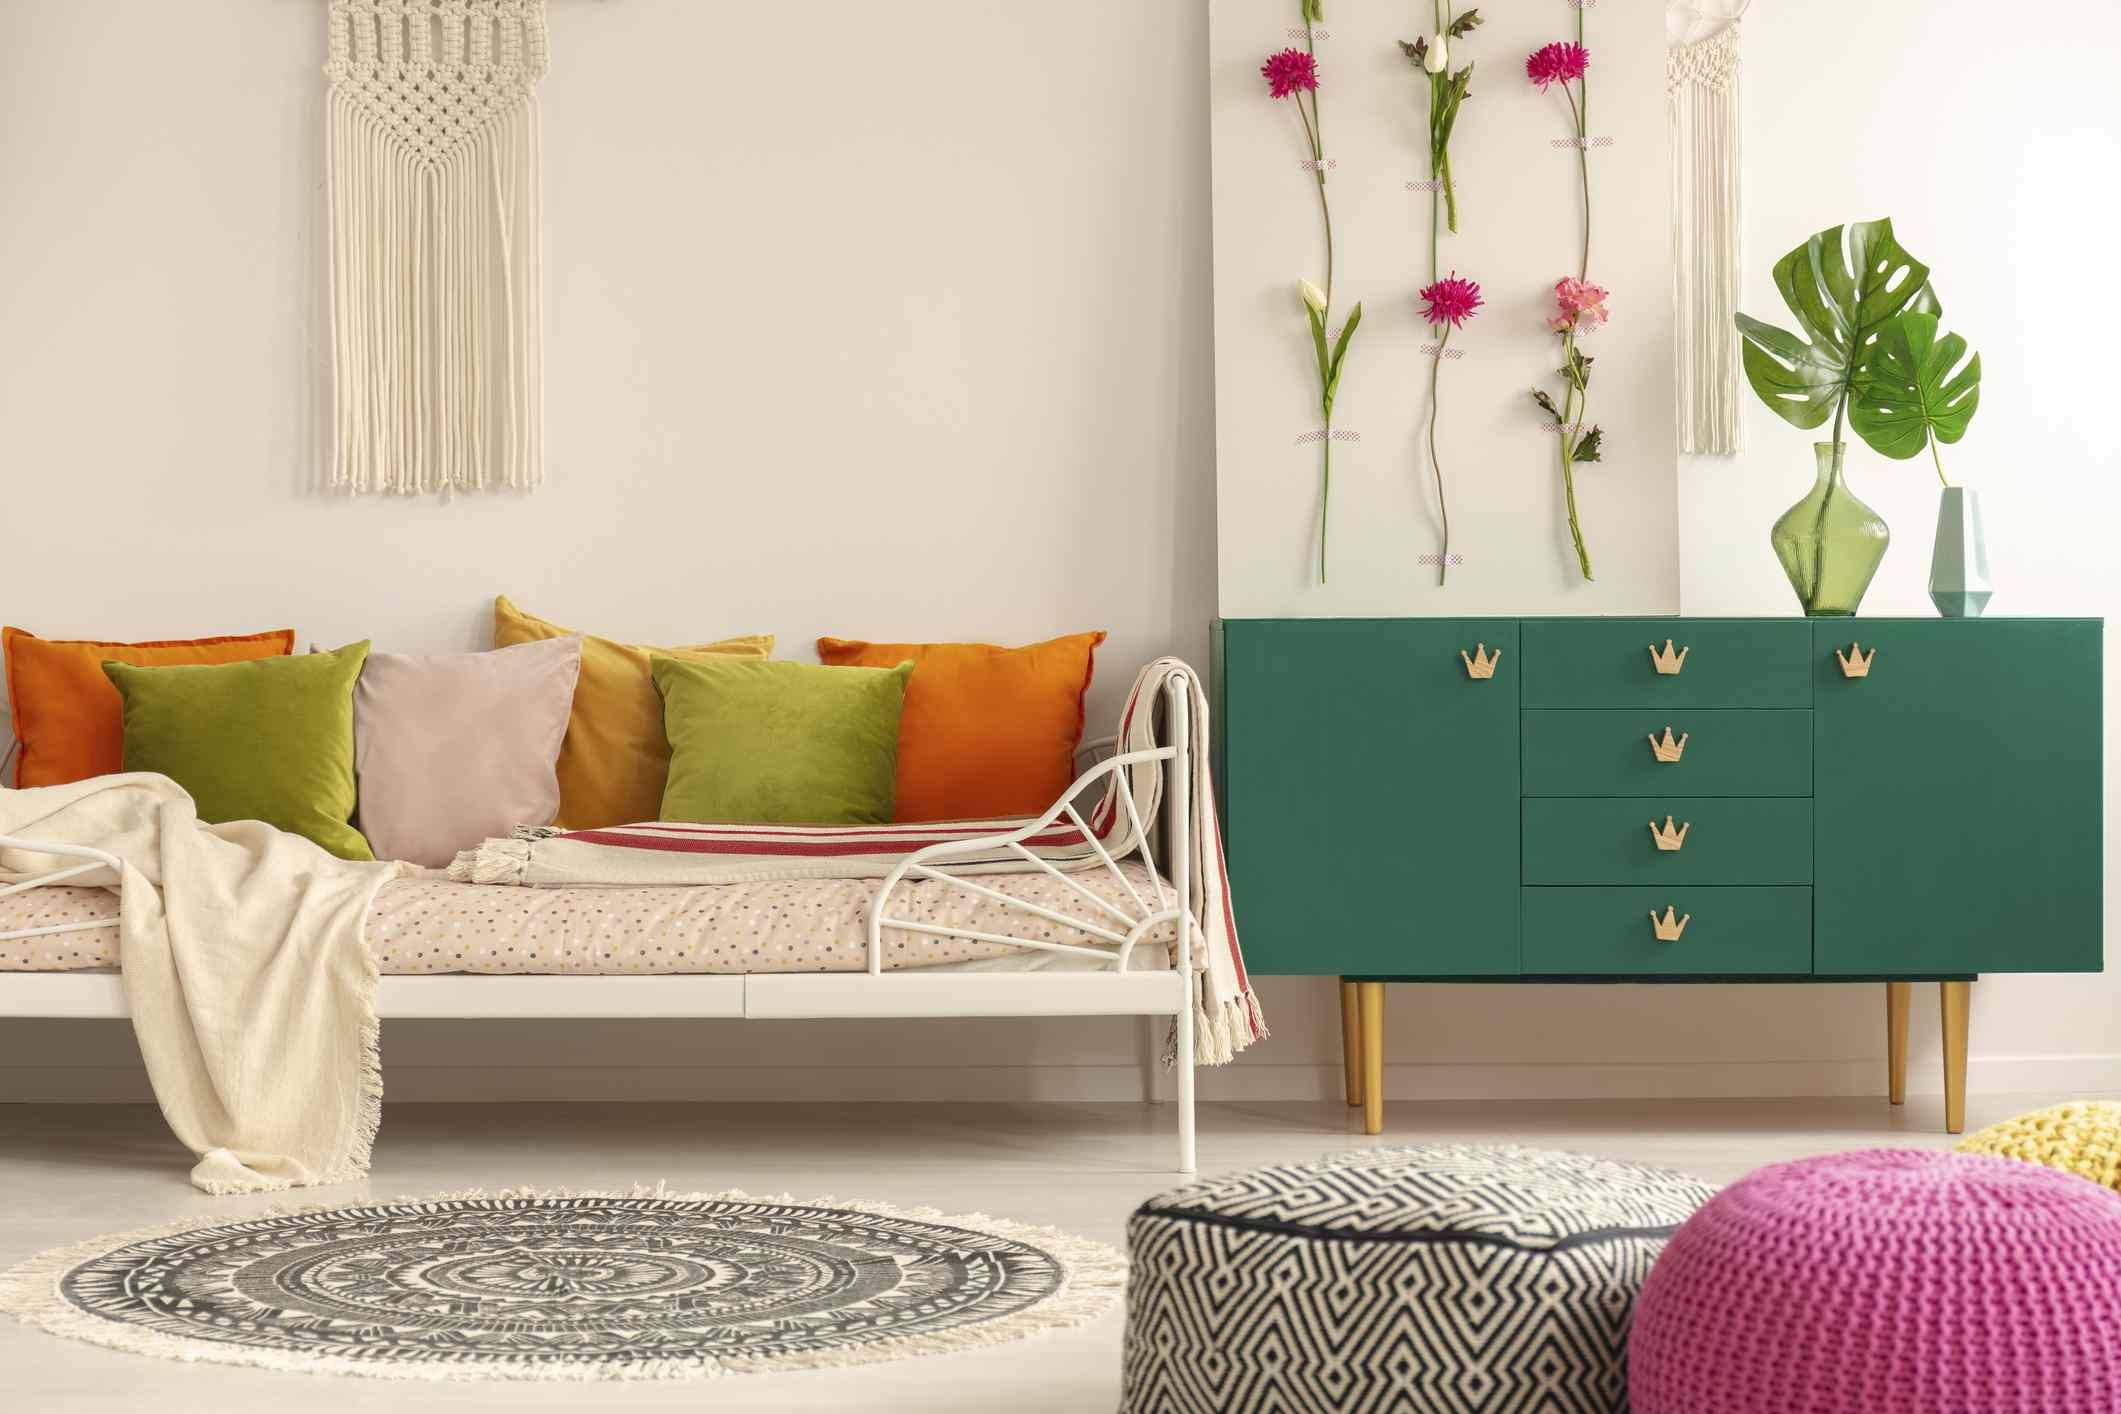 Handmade flower board on green wooden cabinet with leaf in glass vase next to comfortable sofa with olive green, pastel pink, yellow and orange pillows